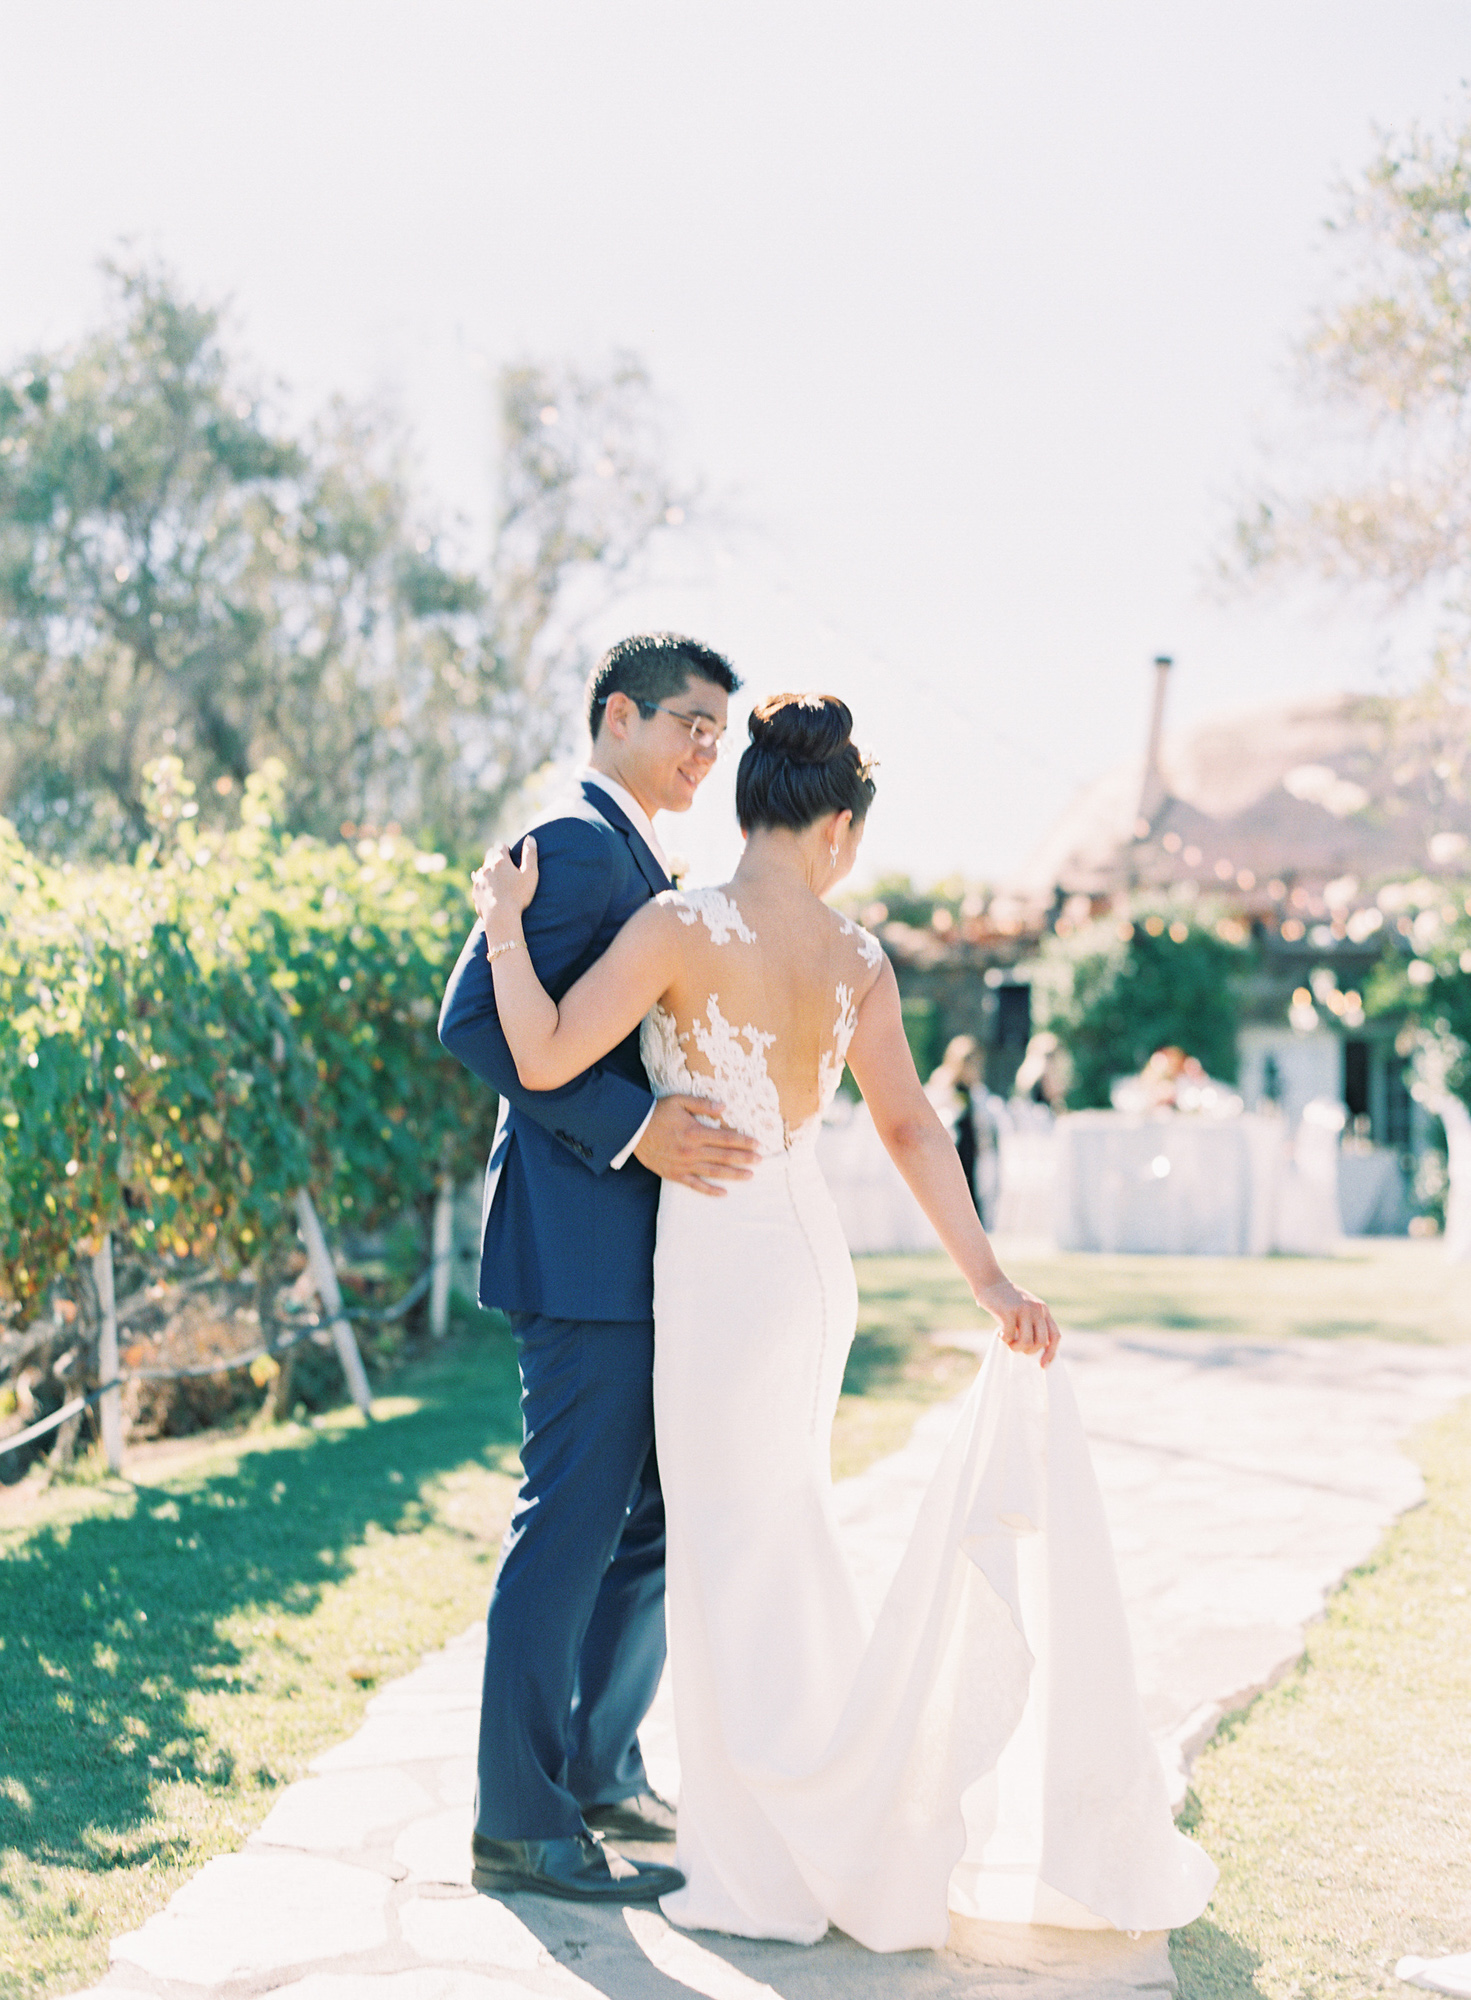 Saddlerock-Ranch-Dome-Film-Wedding-33.jpg